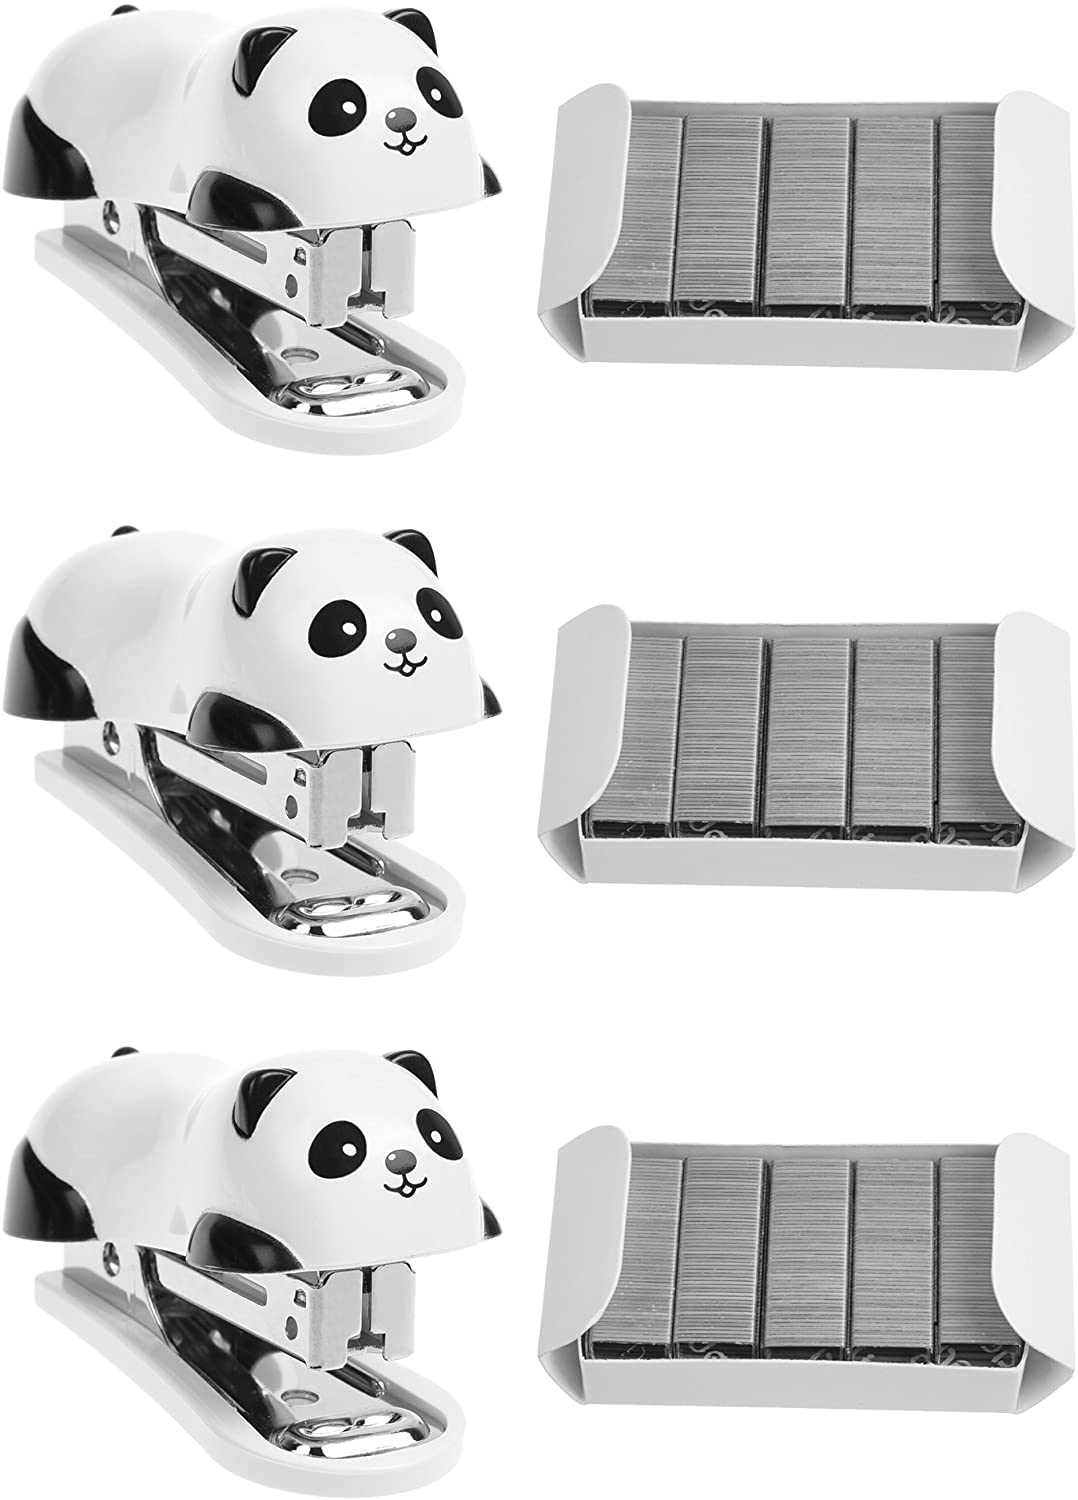 Beautyflier Pack of 3 Cute Mini Panda Staplers with 1000Pcs Replace Staples Cartoon Desktop Staplers Best Award to School Student Office Stationery Supplies